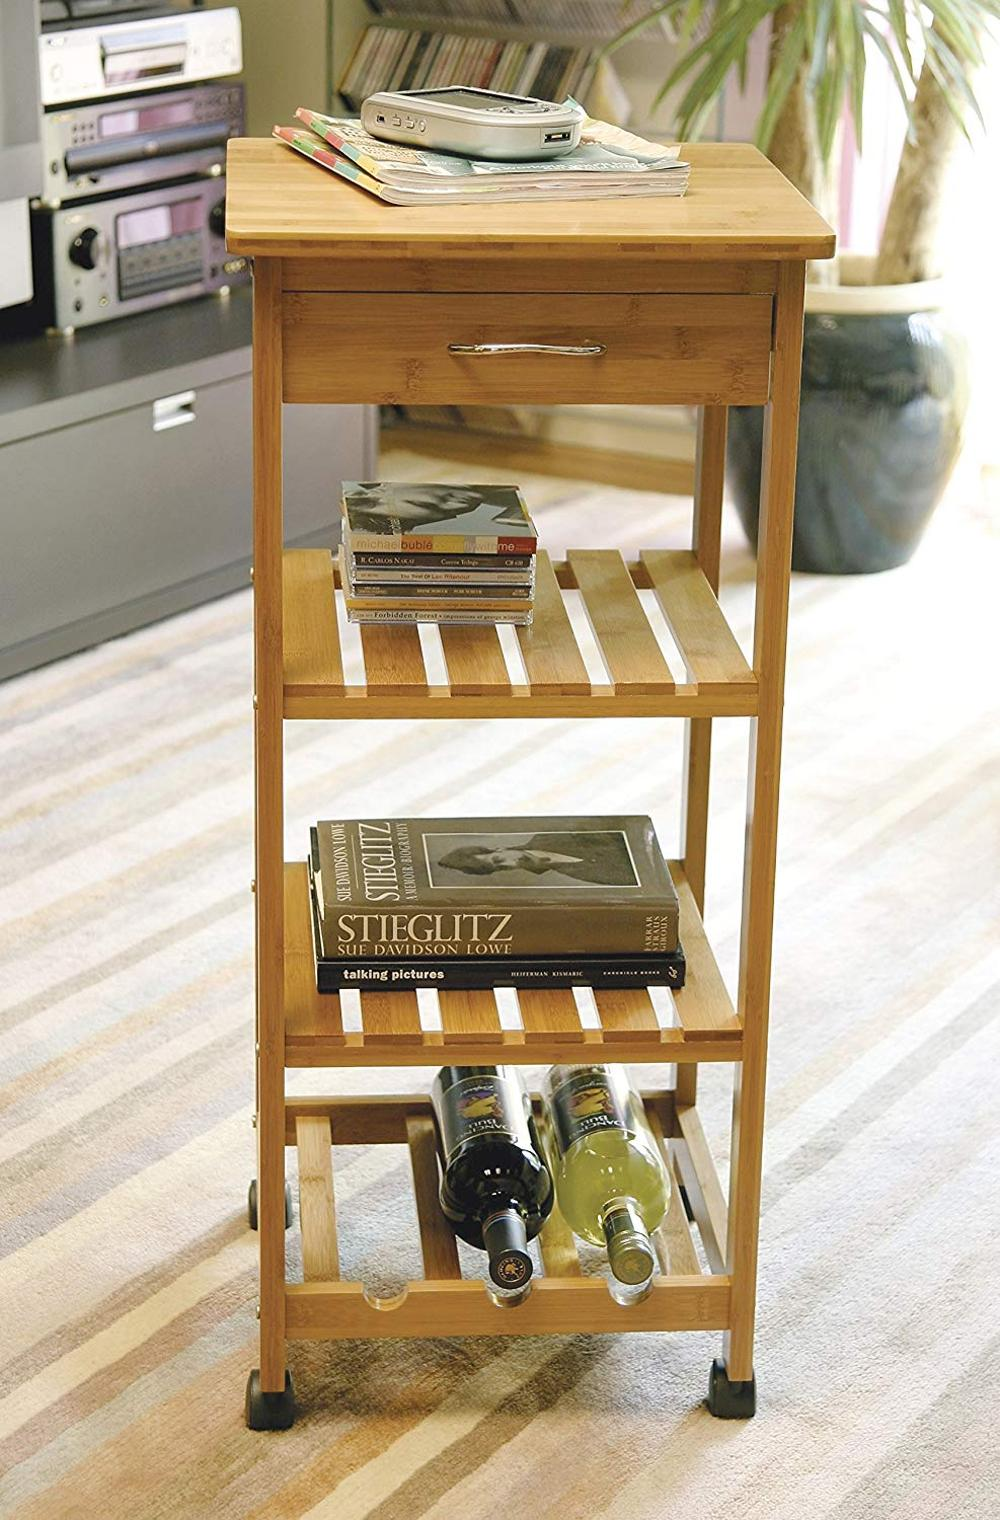 Bamboo-Wood-Kitchen-Trolley-Cart-Space-Saving